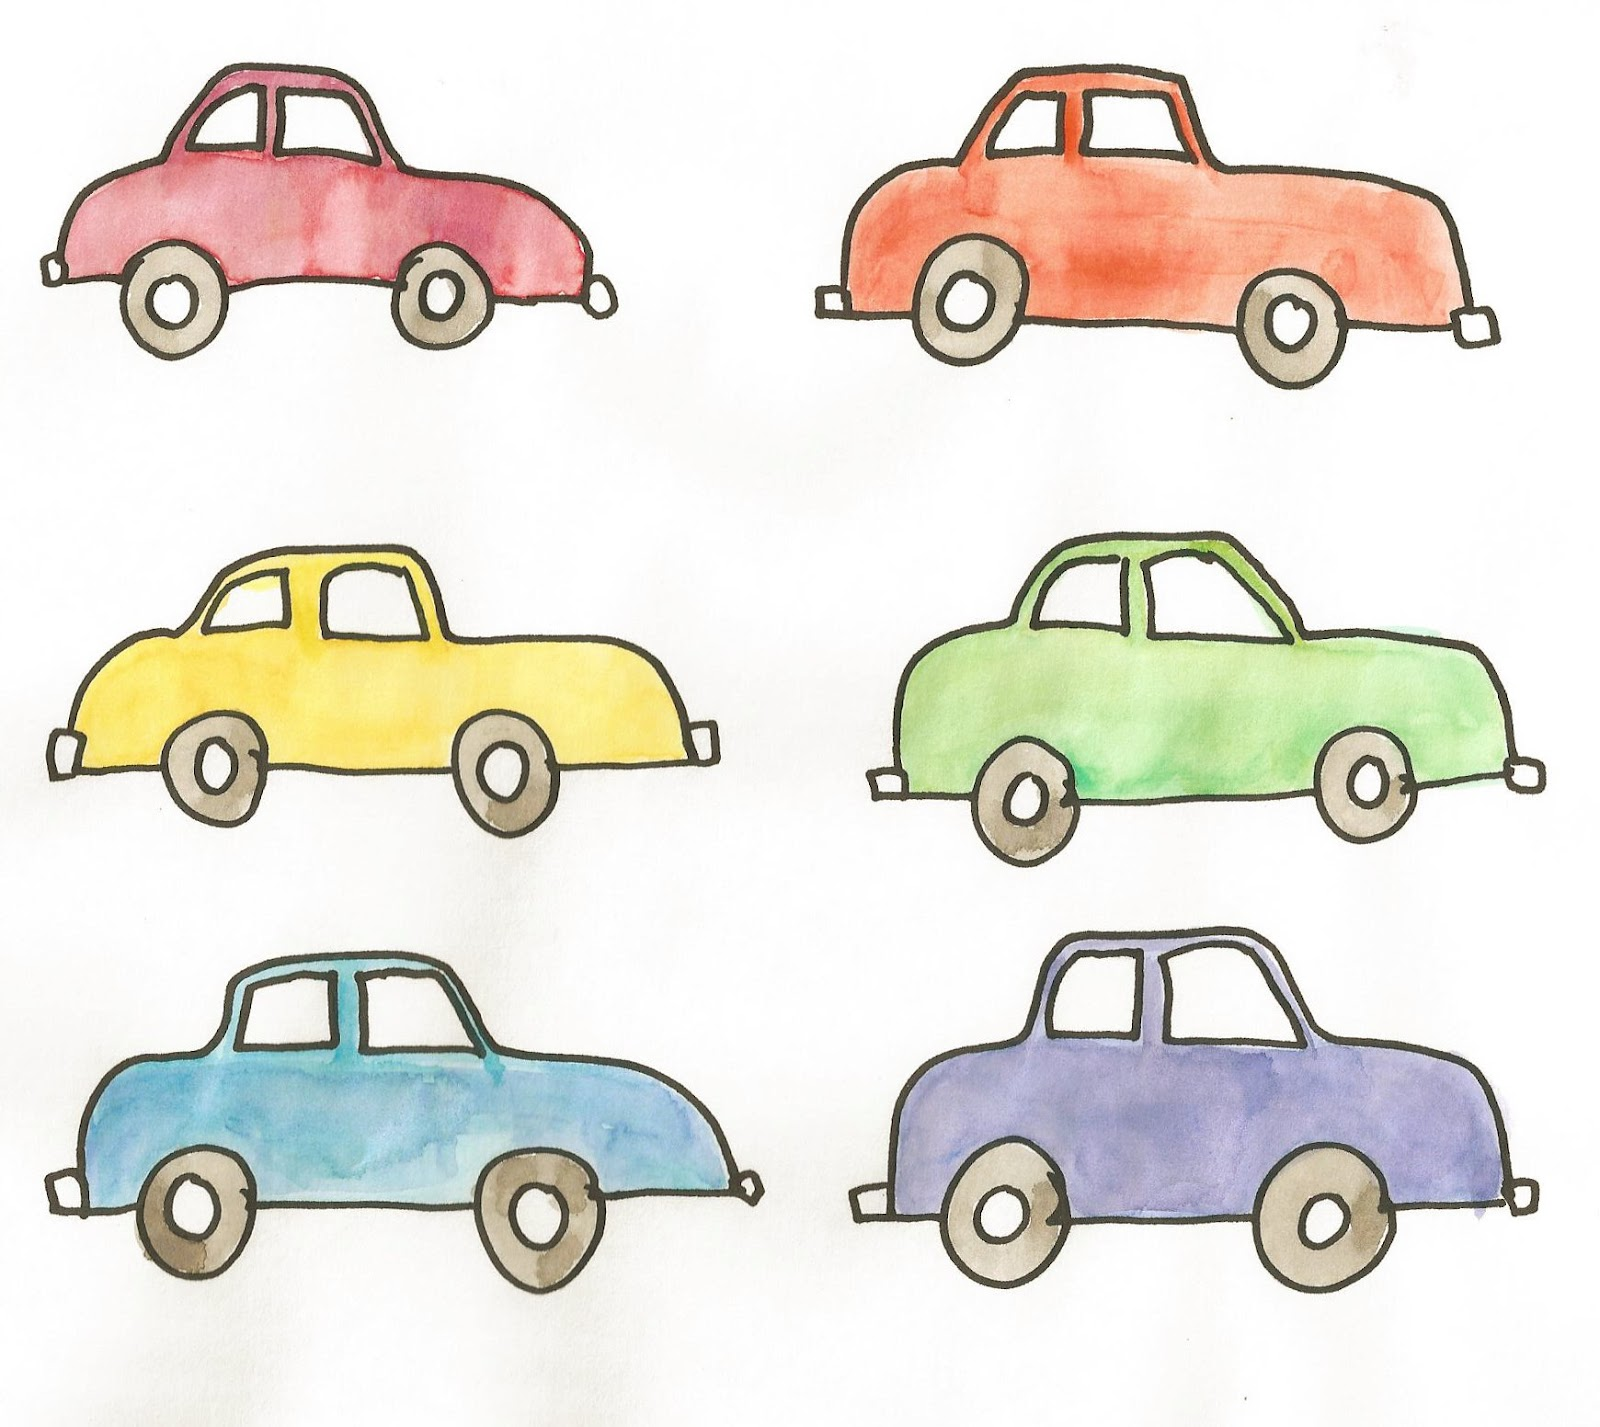 cars Archives | Make Something Daily